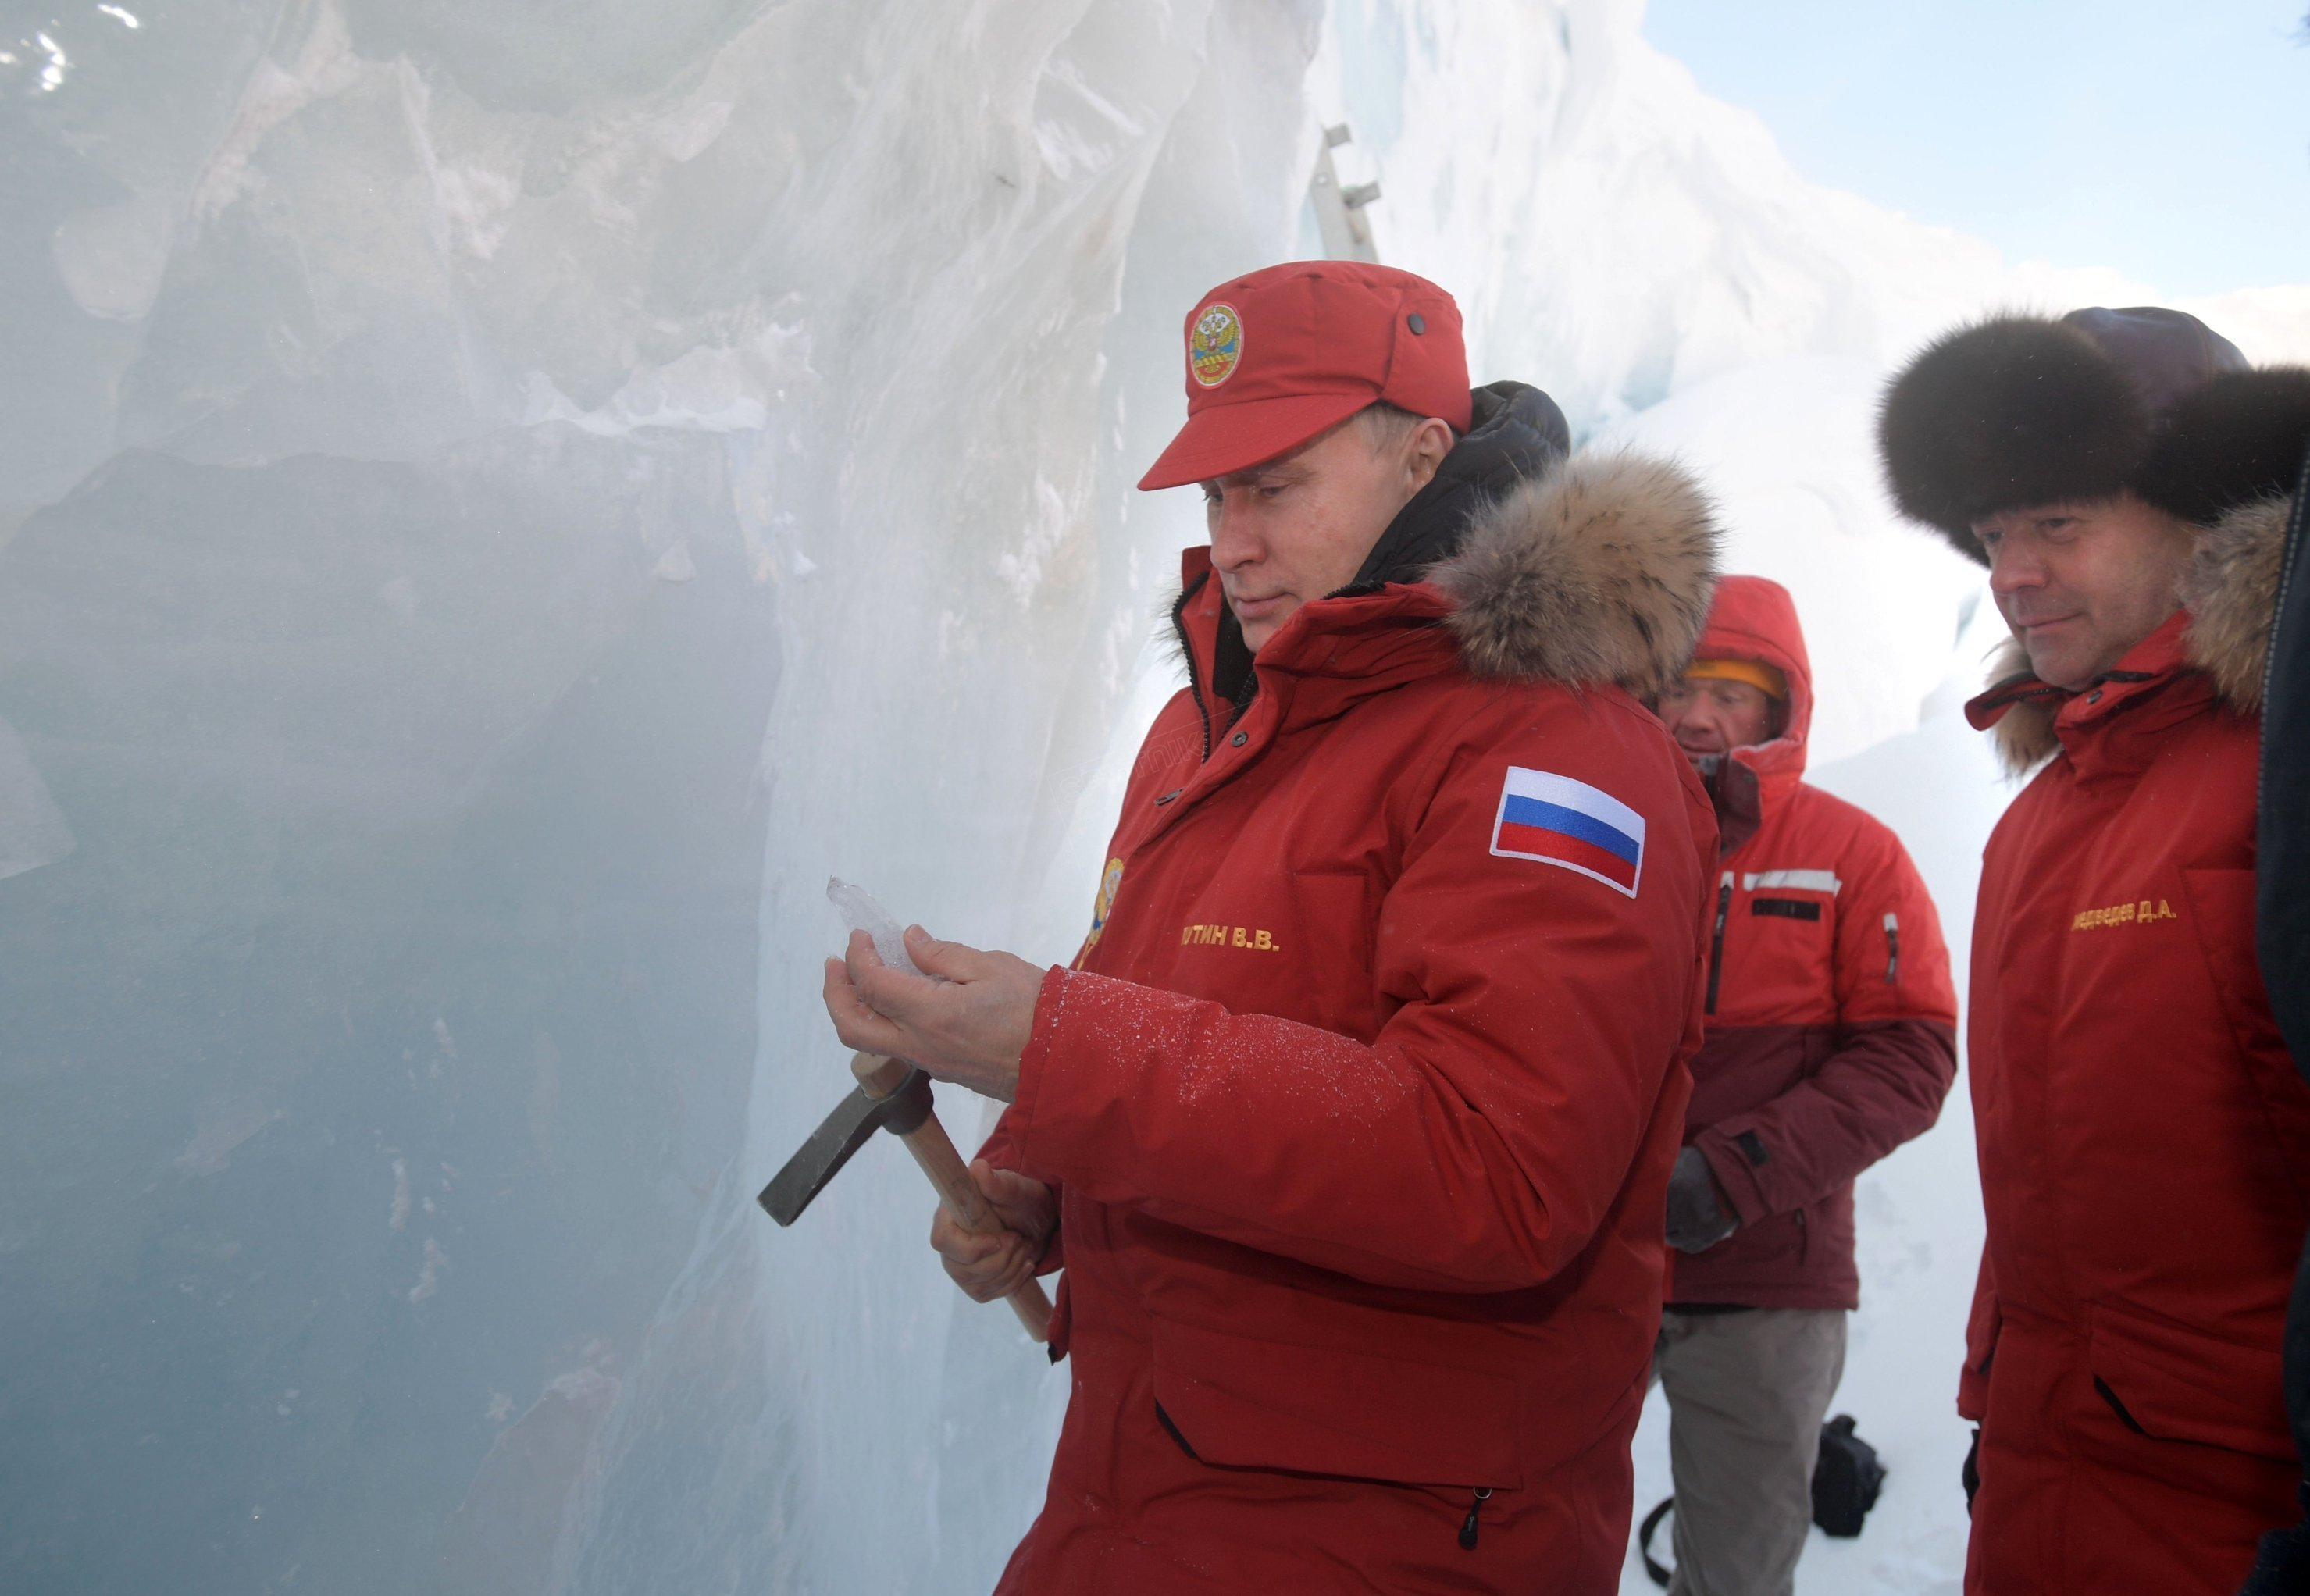 Russian President Vladimir Putin and Prime Minister Dmitry Medvedev visit the Polar Pilots Ice Cave on Alexandra Land Island in the Franz Josef Land Archipelago